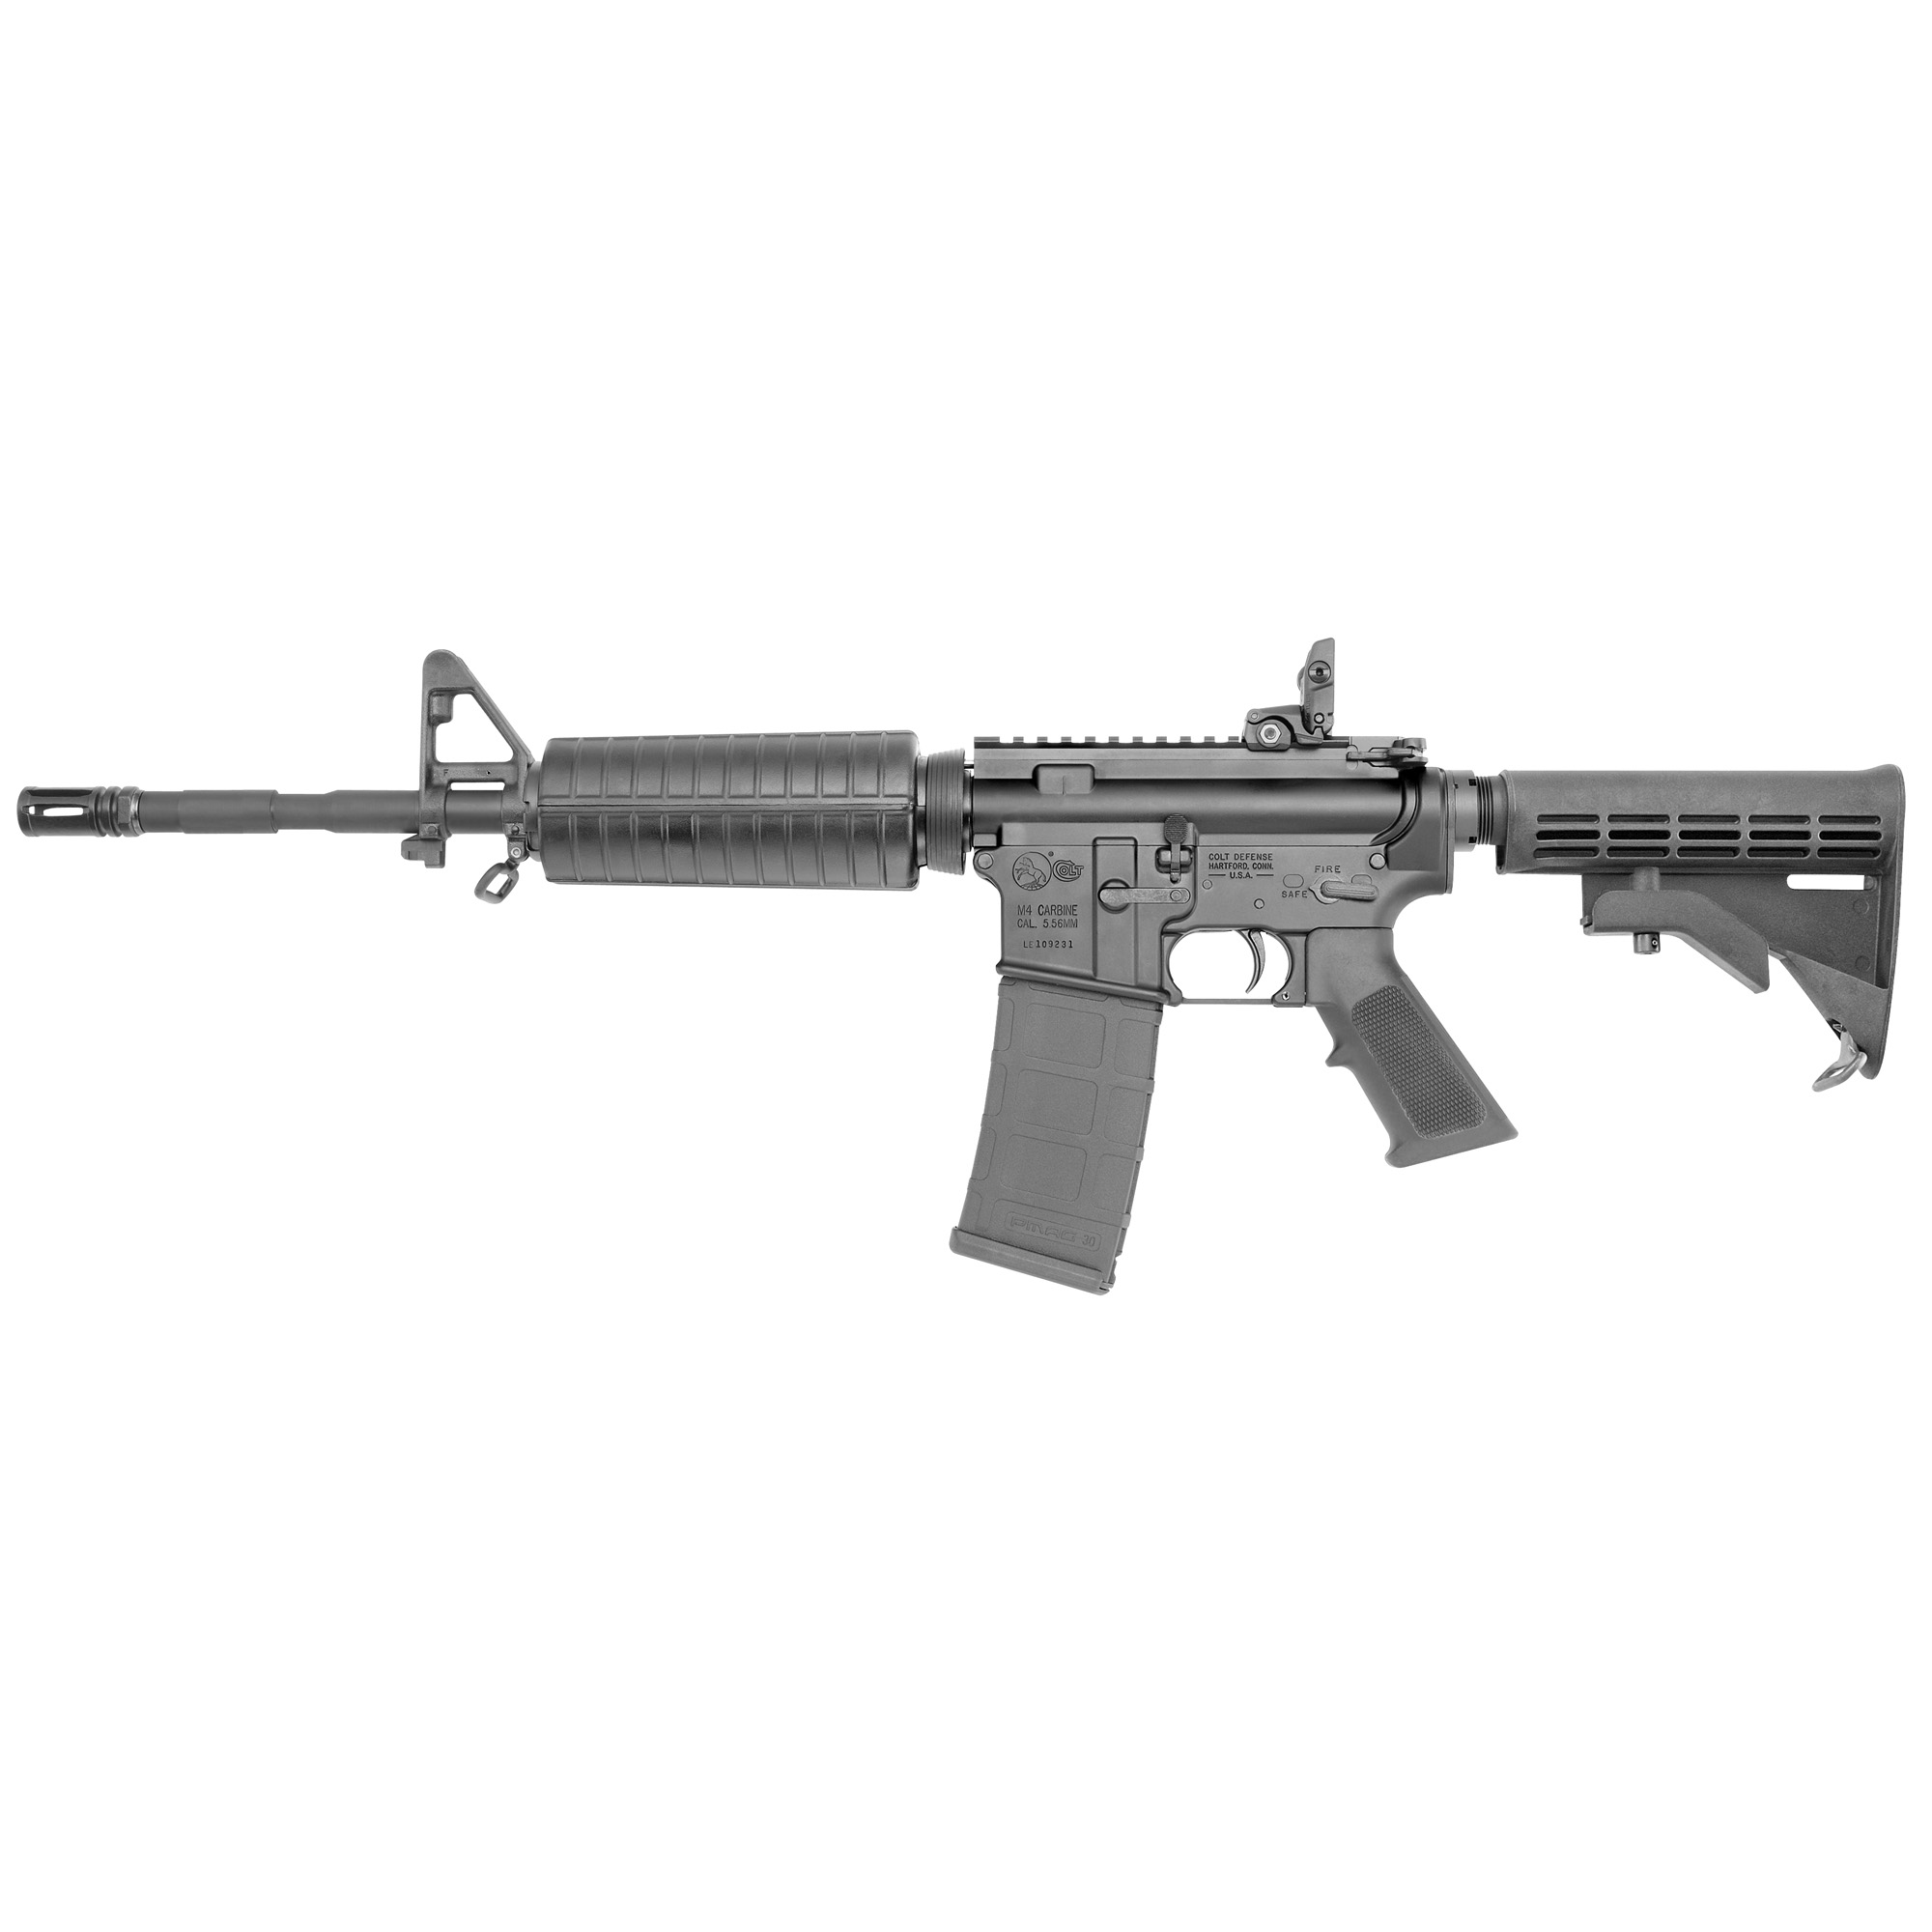 "The M4 Carbine features a 14.5"" SOCOM heavy barrel"" pinned and welded extended flash hider to extend the barrel to a NON-NFA length of 16.1"""" matte black finish and a collapsible buttstock."